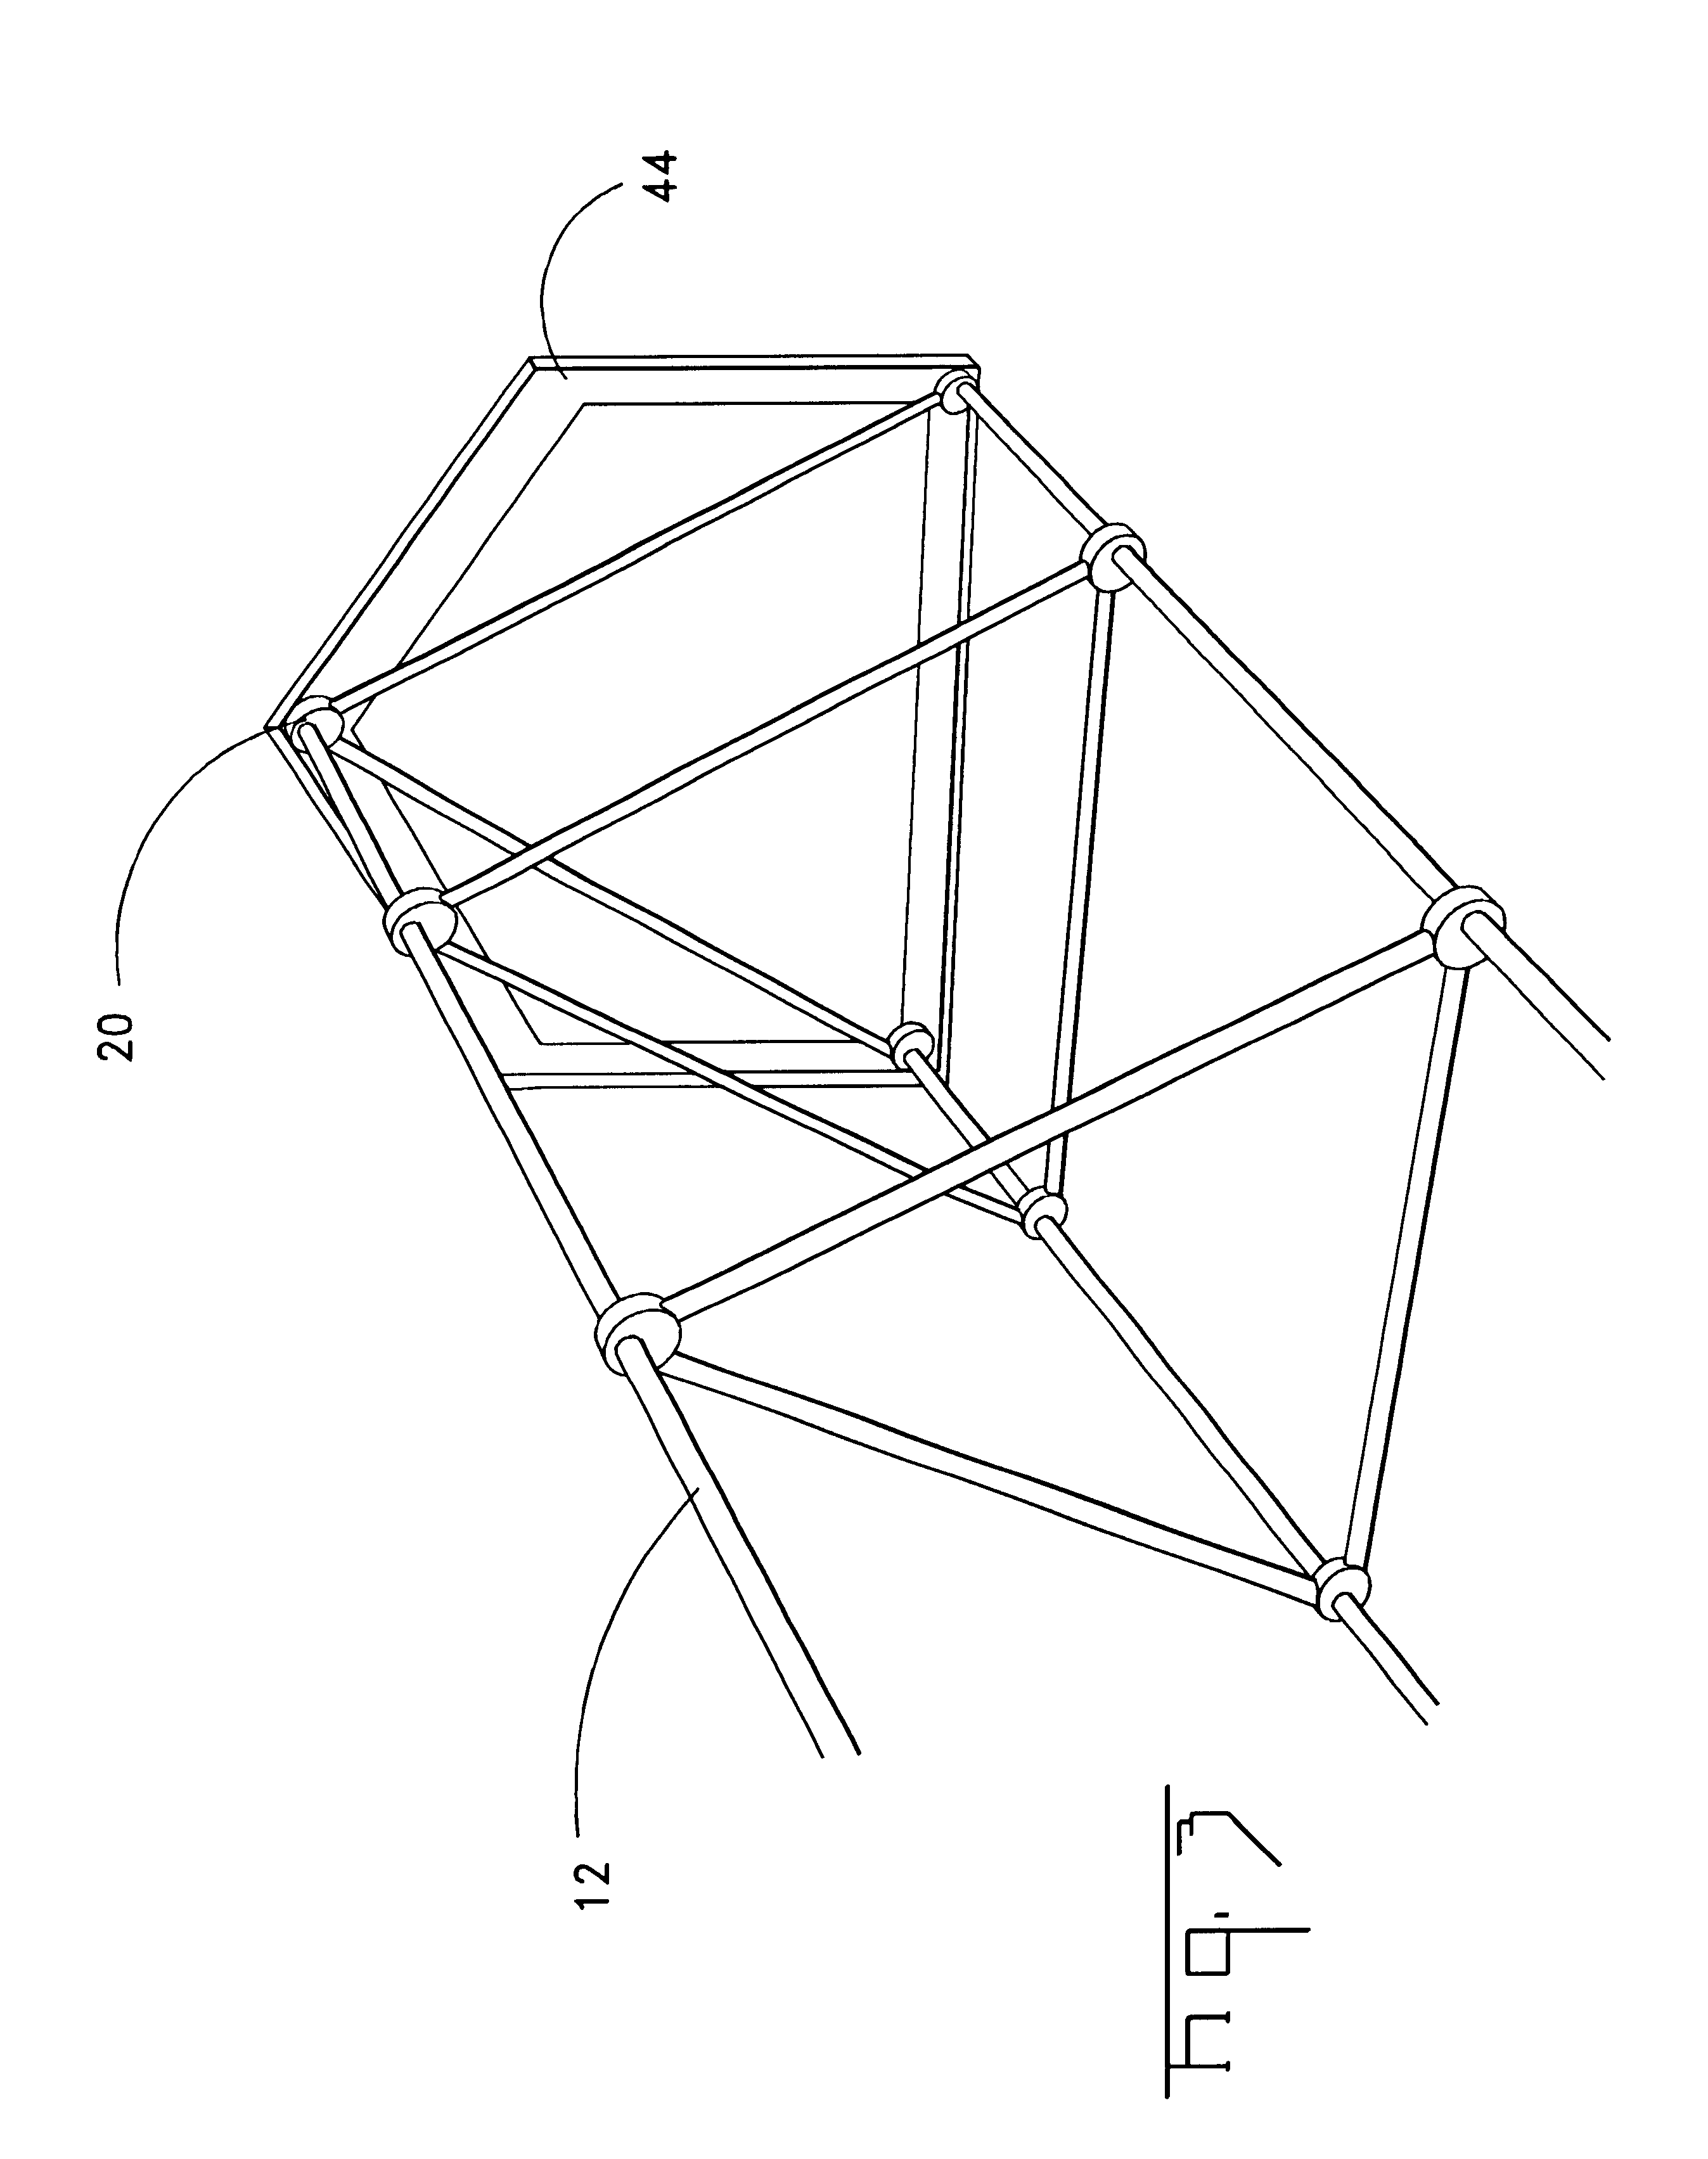 Structural Framing Fittings : Patente us light aircraft fuselage and structural